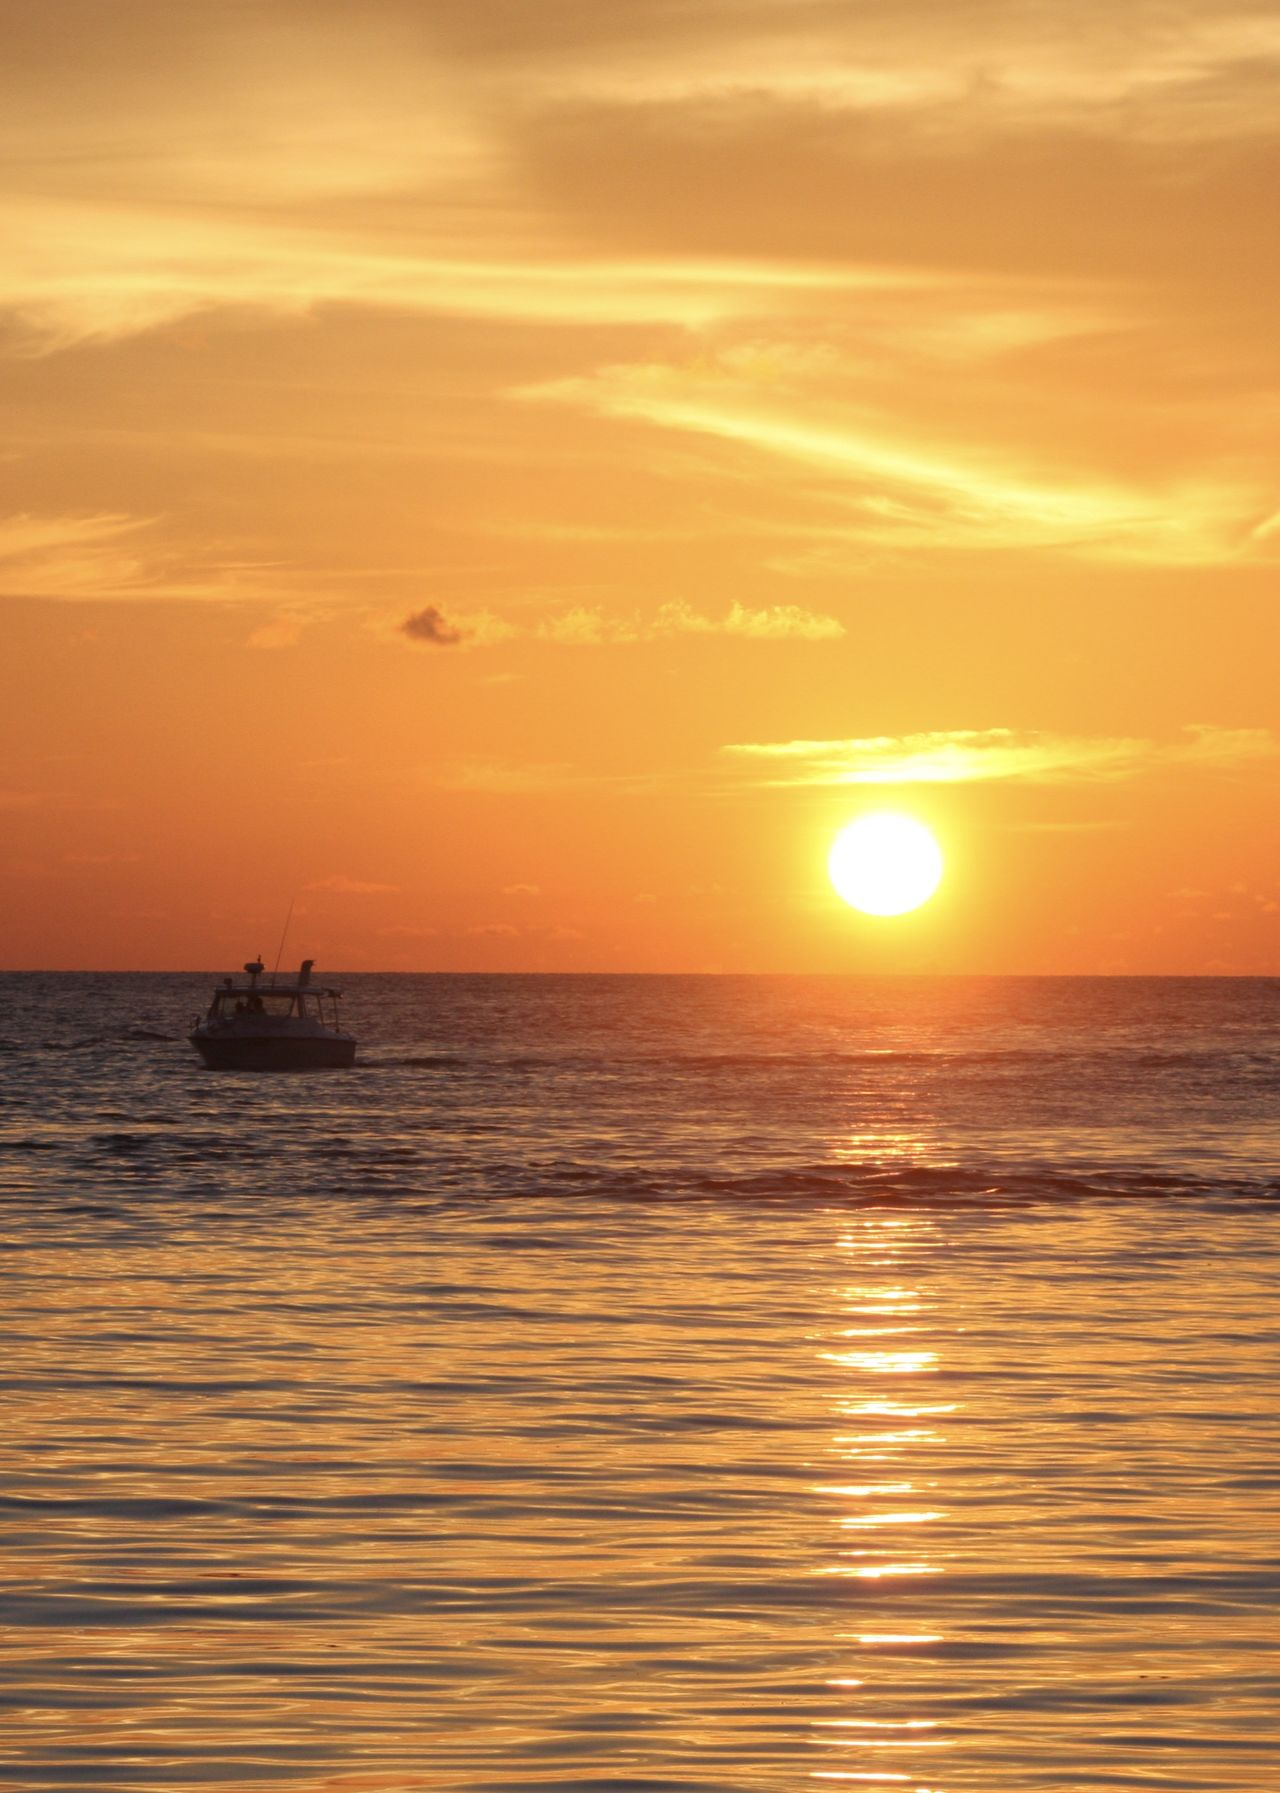 golden hour, sunset on the maldives Amazing View Beauty In Nature Boat Golden Hour Holiday Horizon Over Water Idyllic Light Maldives Nature Nautical Vessel Orange Color Outdoors Reflection Relaxing Scenics Sea Silhouette Sky Sun Sunlight Sunset Tranquil Scene Travel Water